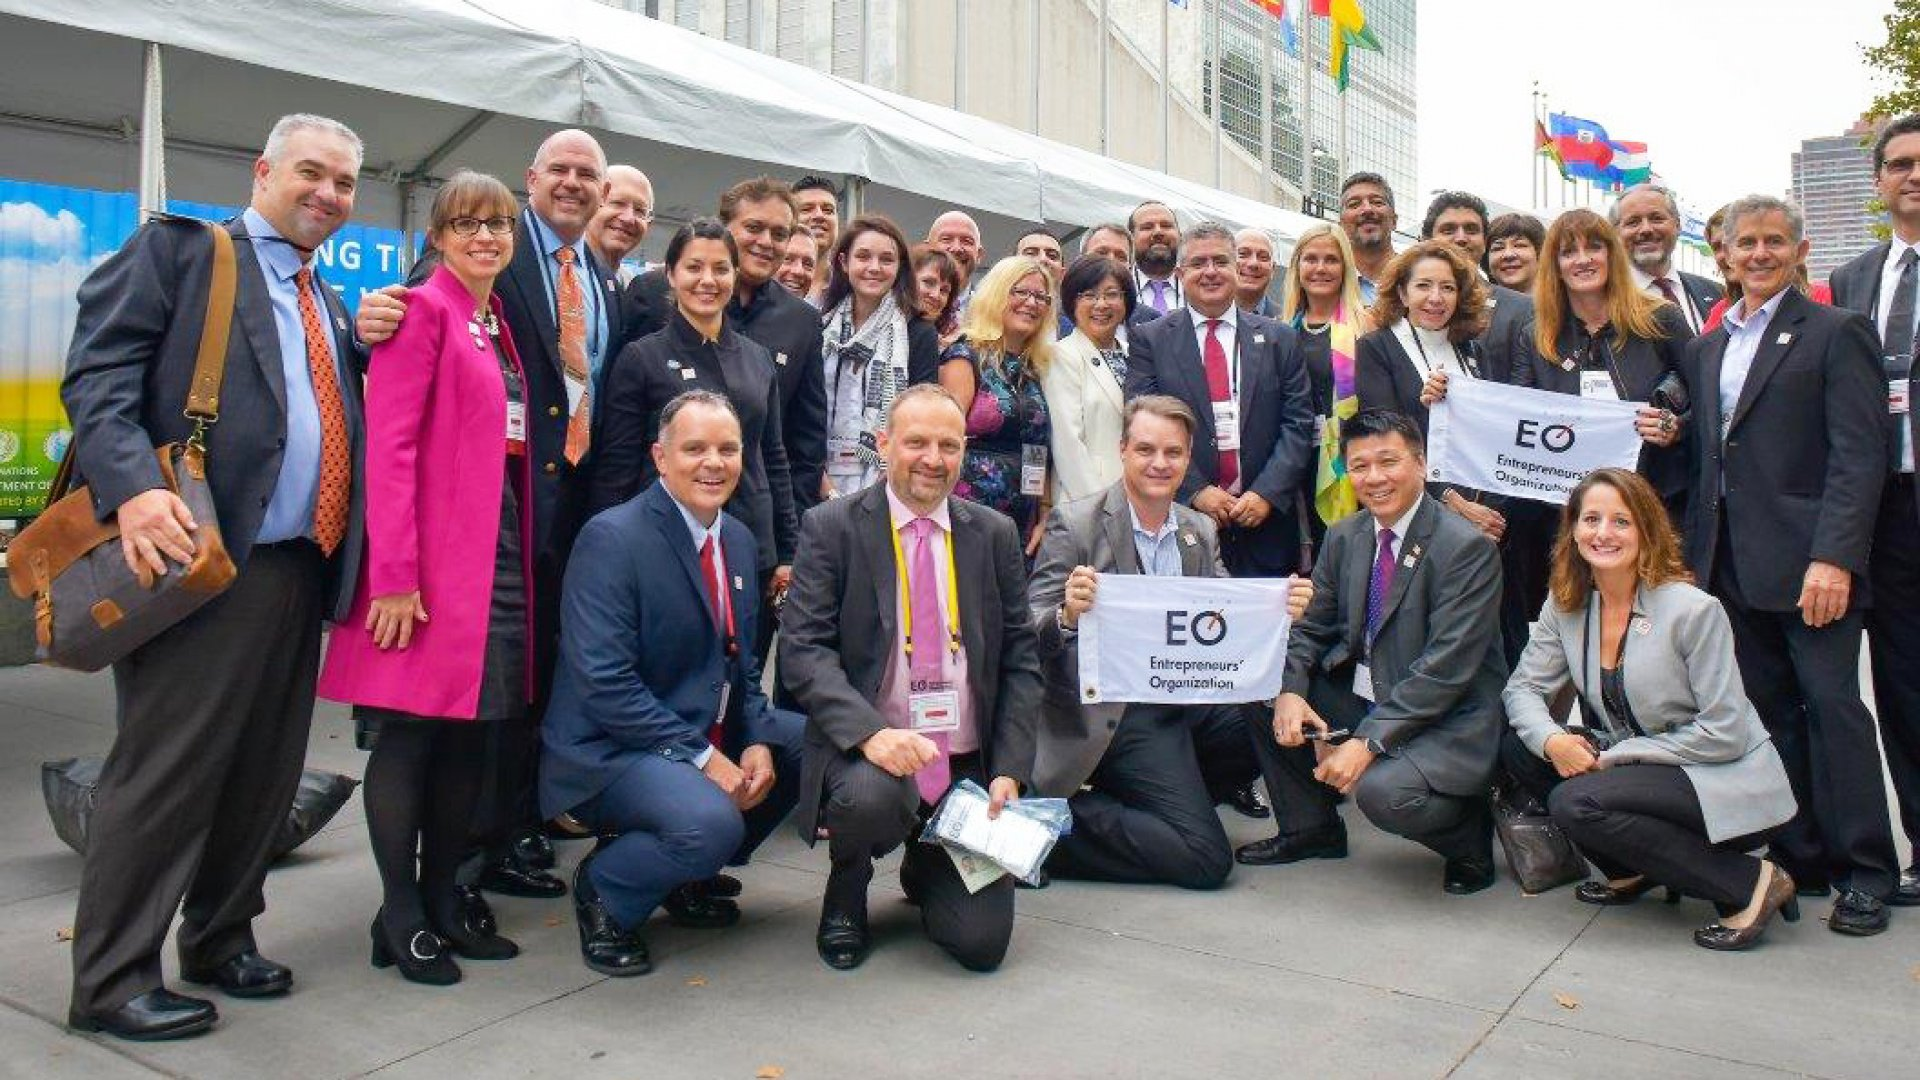 Entrepreneurs' Organization members and staff gathered in New York on 19 September to witness the organization's formal announcement in support of the UN's Sustainable Development Goals.